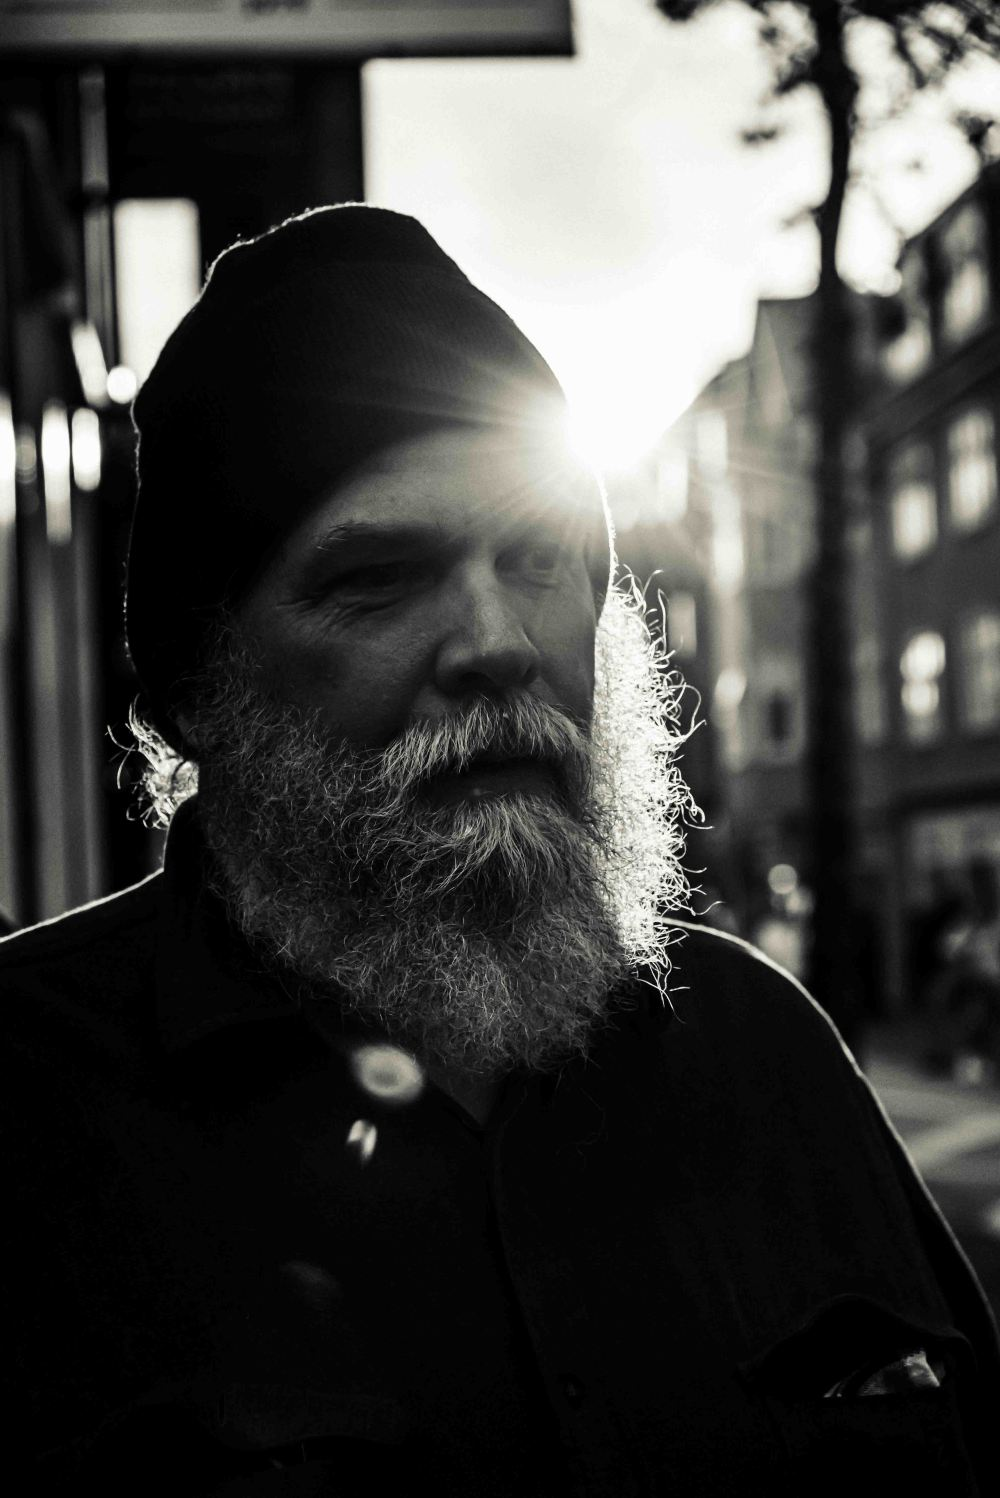 neilson travel street portrait photography iceland black and white beard man bay area photographer